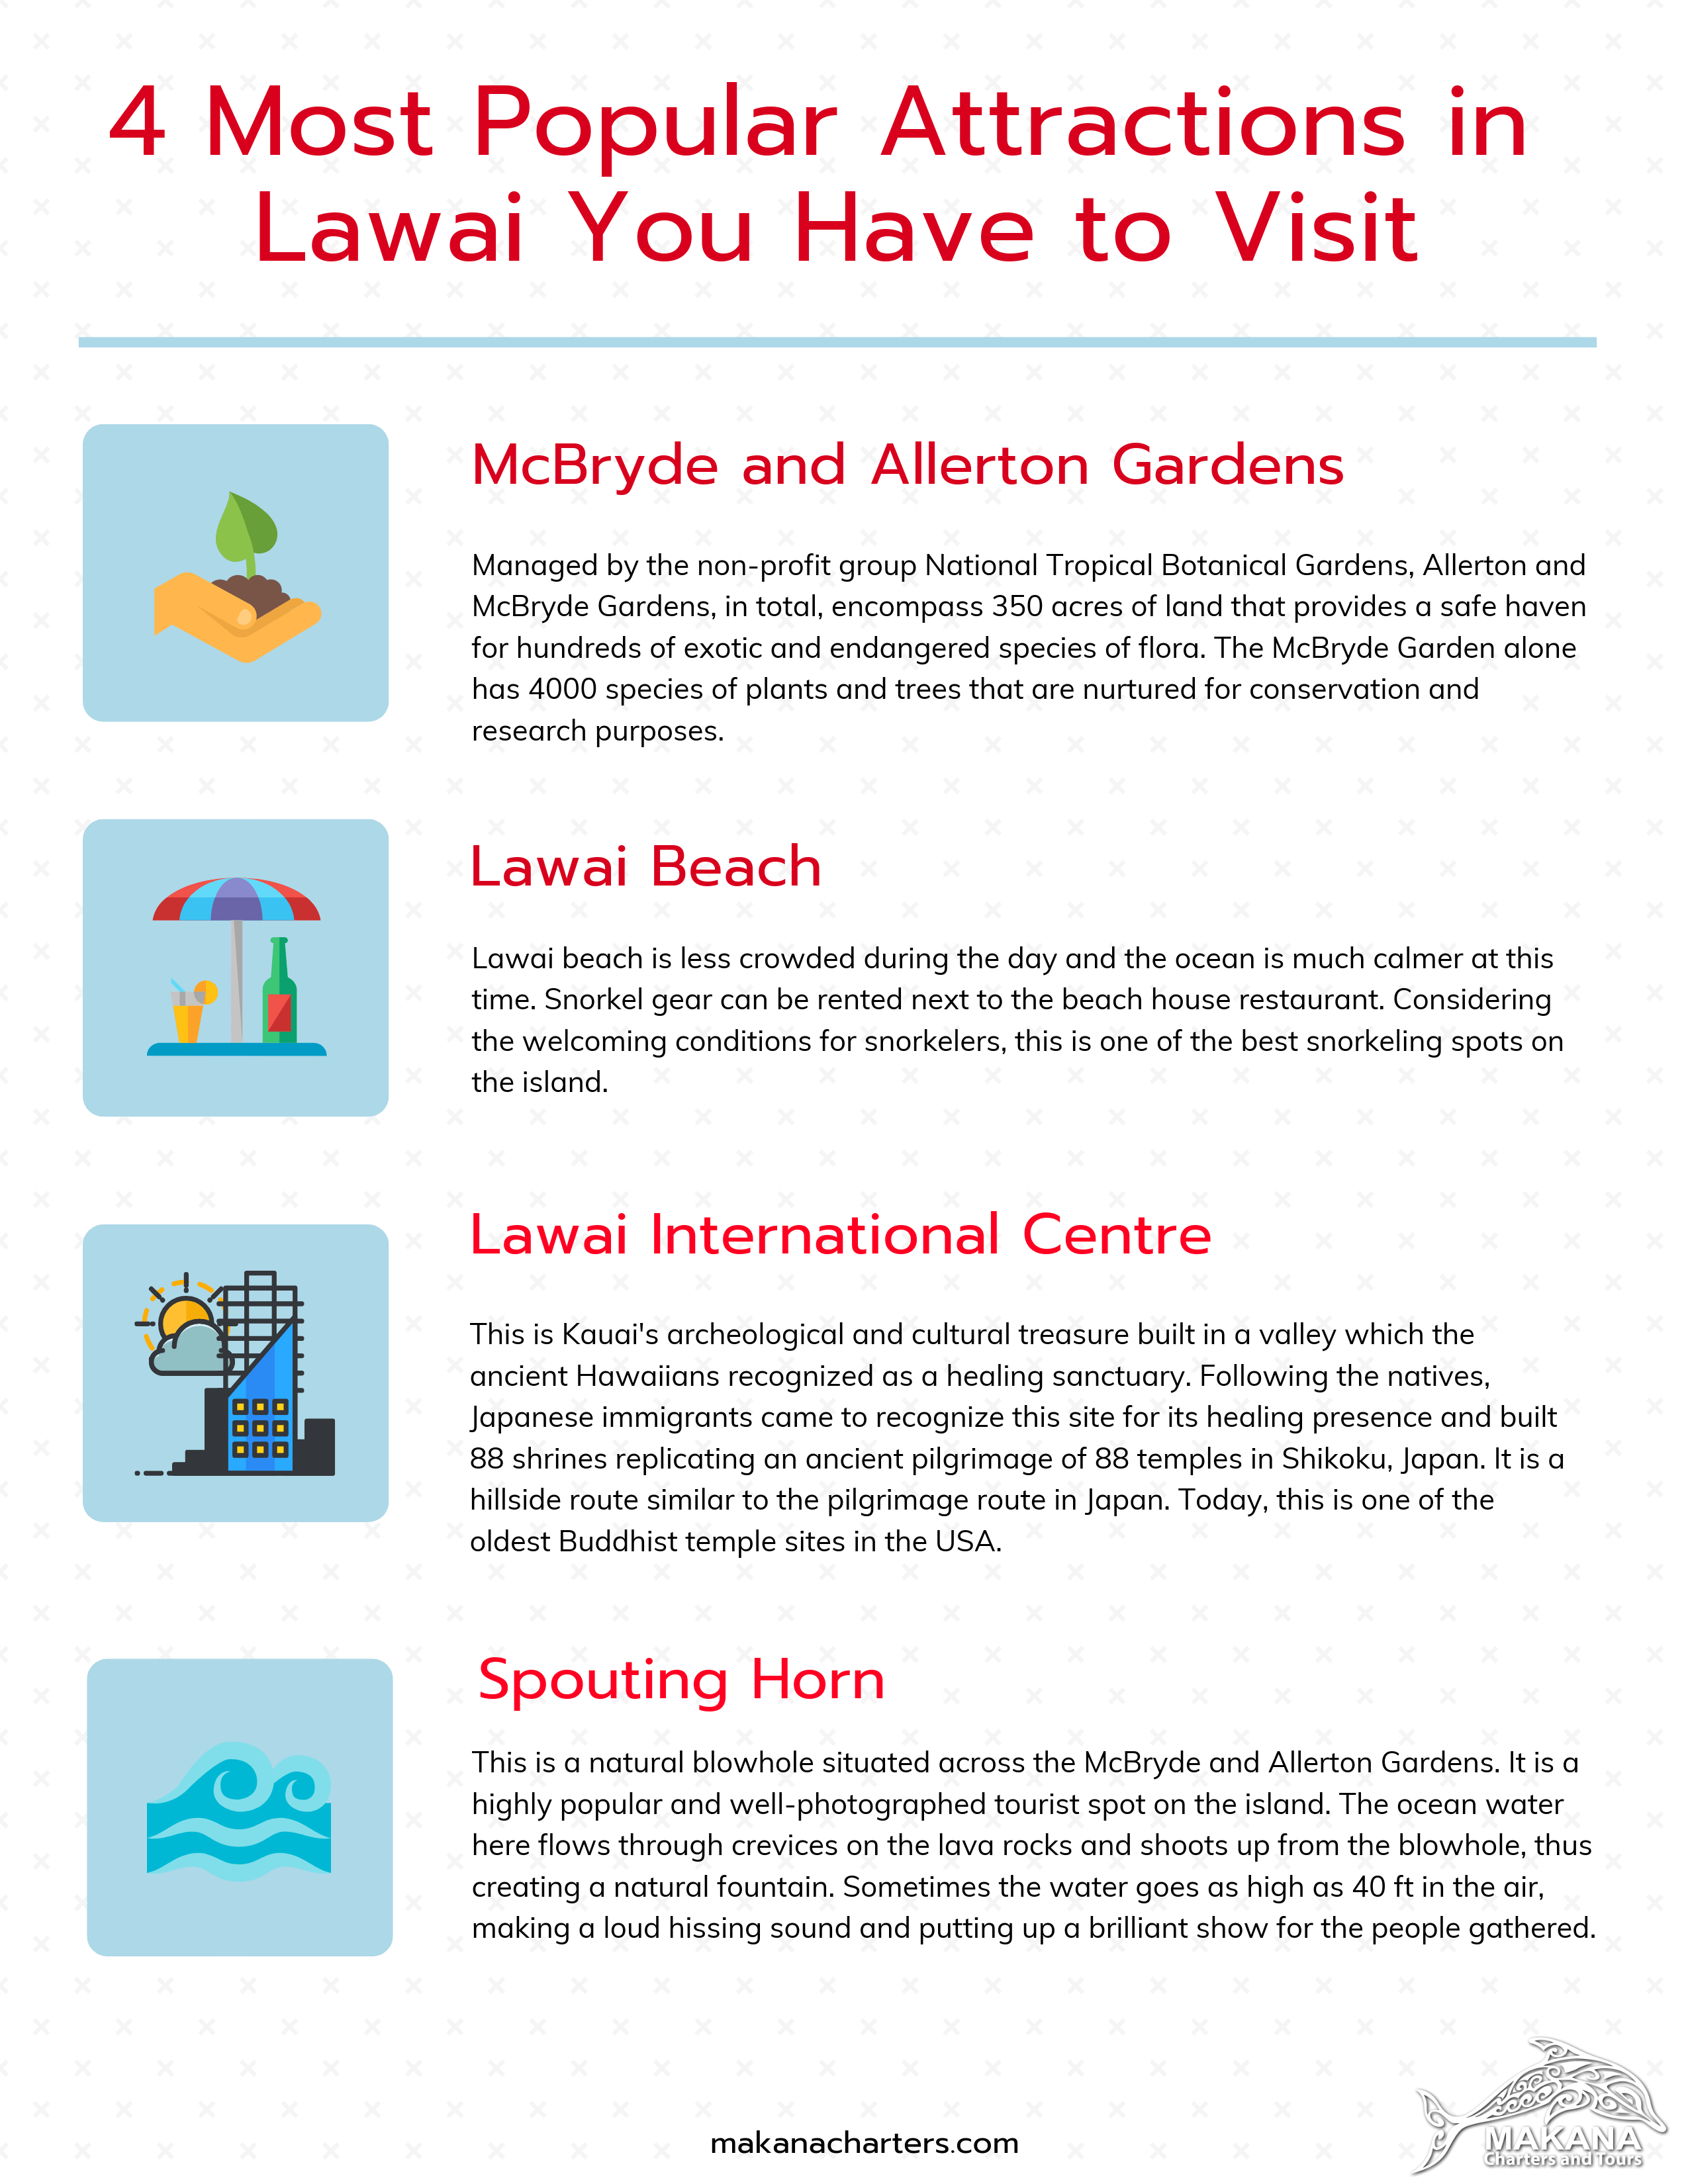 4 Most Popular Attractions in Lawai You Have to Visit [Infographic]